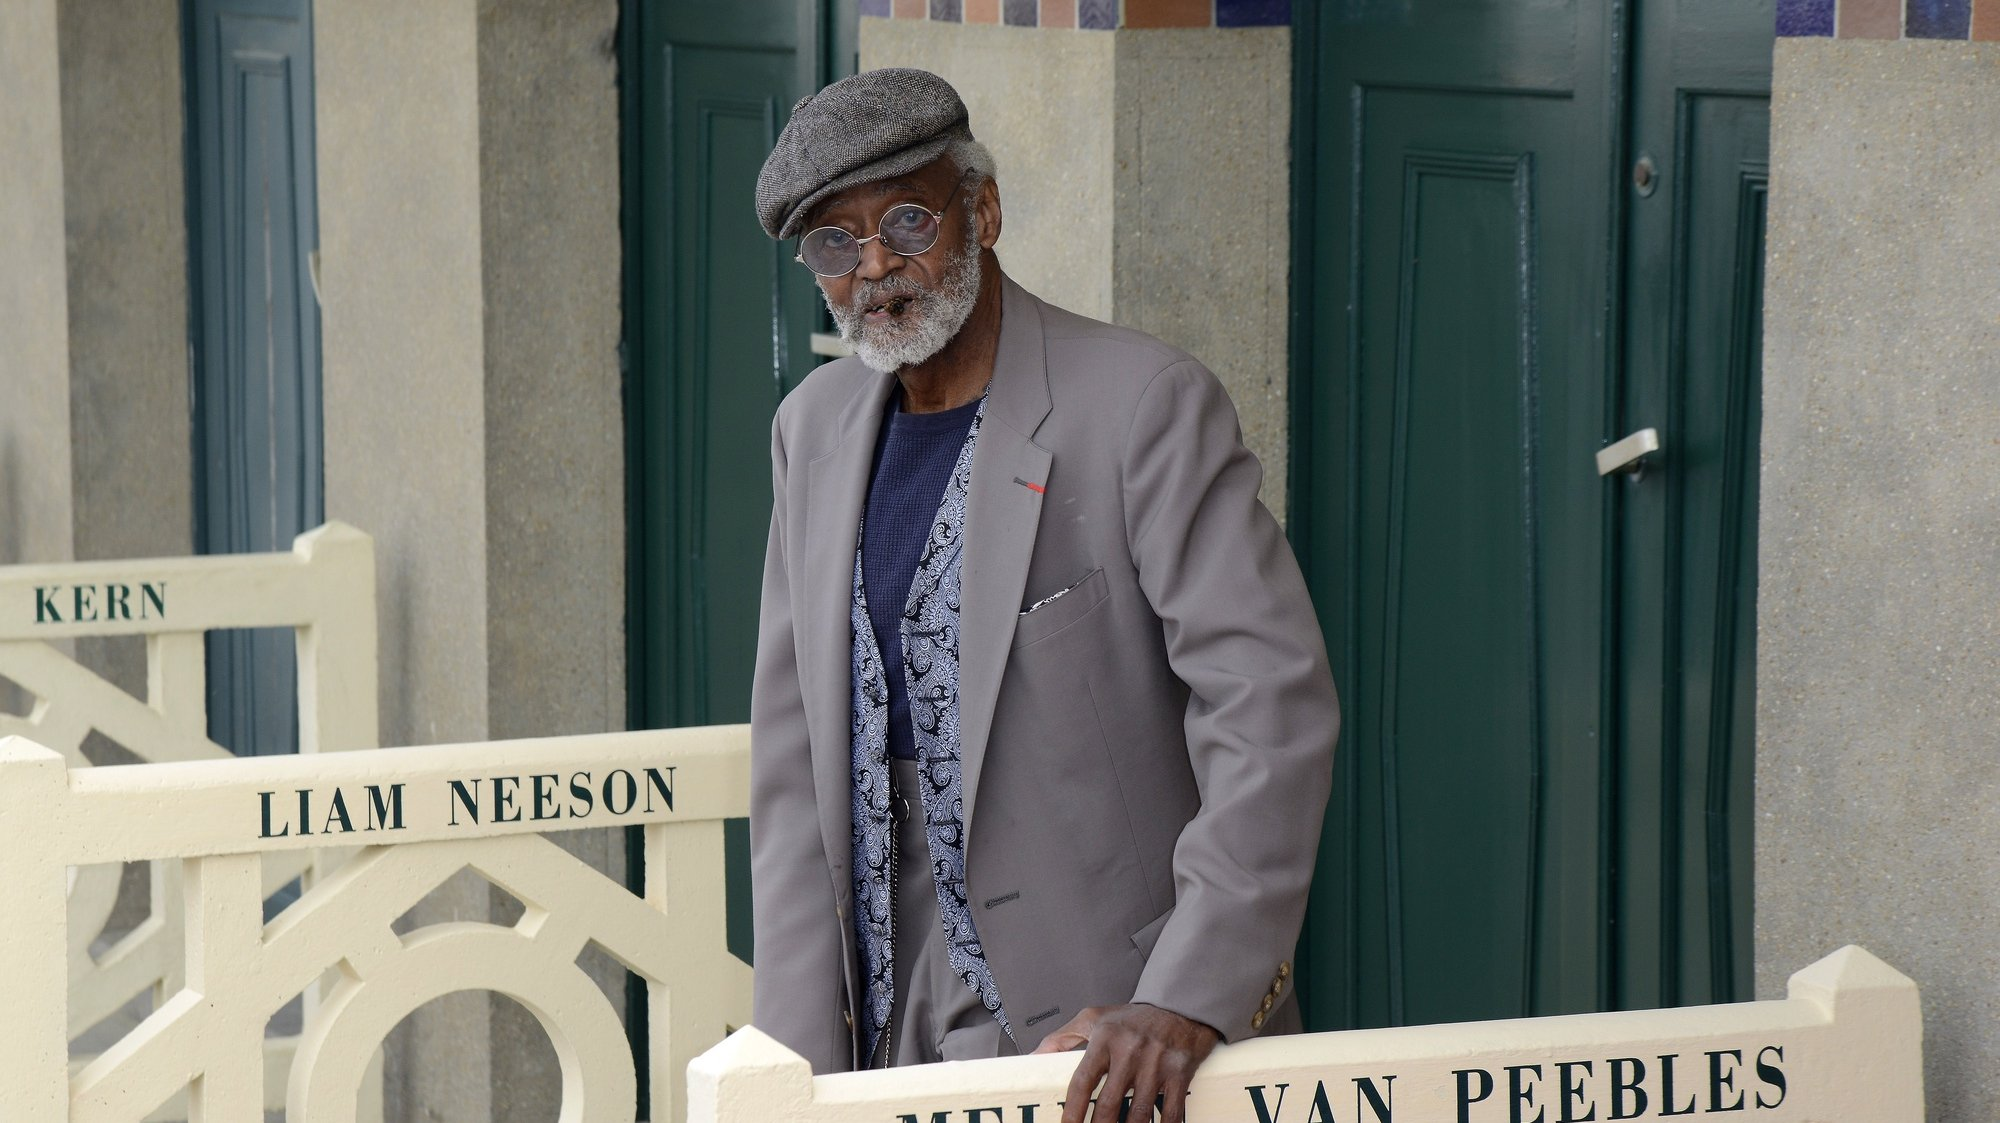 epa09482586 (FILE) - US actor Melvin Van Peebles poses in front of a newly unveiled beach changing-booth in his name, along the Deauville beach front, during the 38th Deauville American Film Festival, in Deauville, France, 05 September 2012 (Reissued 22 September 2021). US filmmaker Melvin Van Peebles died at the age of 89.  EPA/STEPHANE REIX *** Local Caption *** 50508839